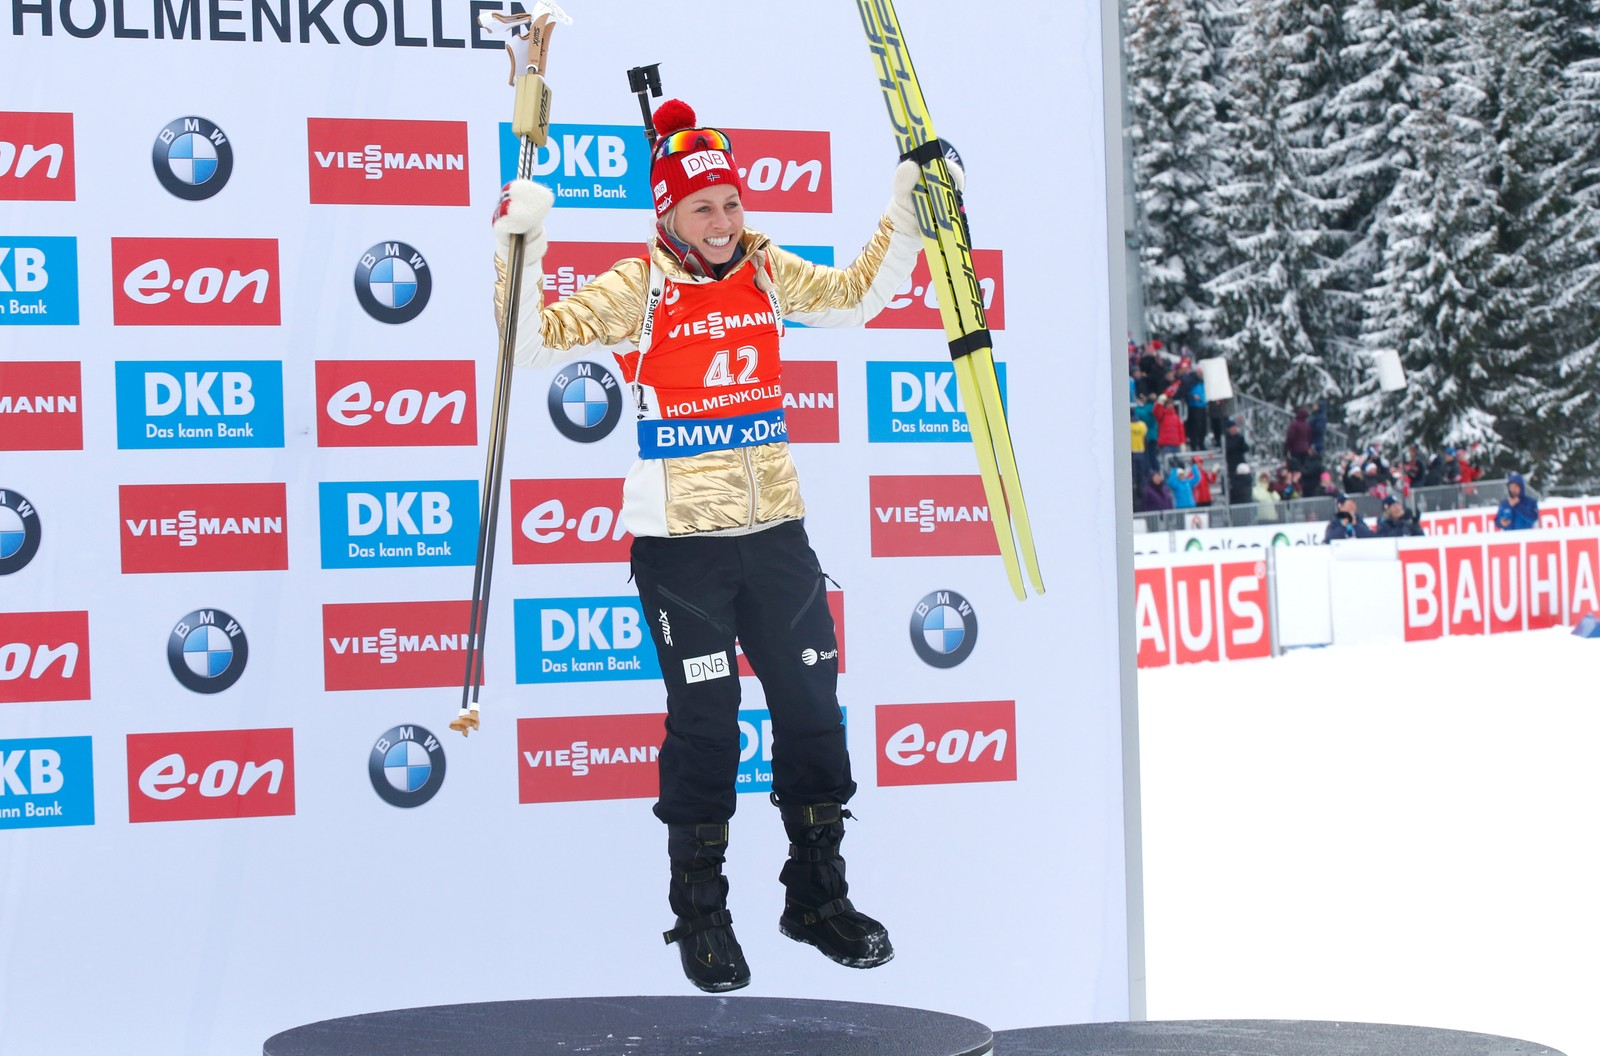 IBU Biathlon World Championships Oslo 2016: Sprint events Saturday 5 March: Norwegian gold medallist Tiril Eckhoff.